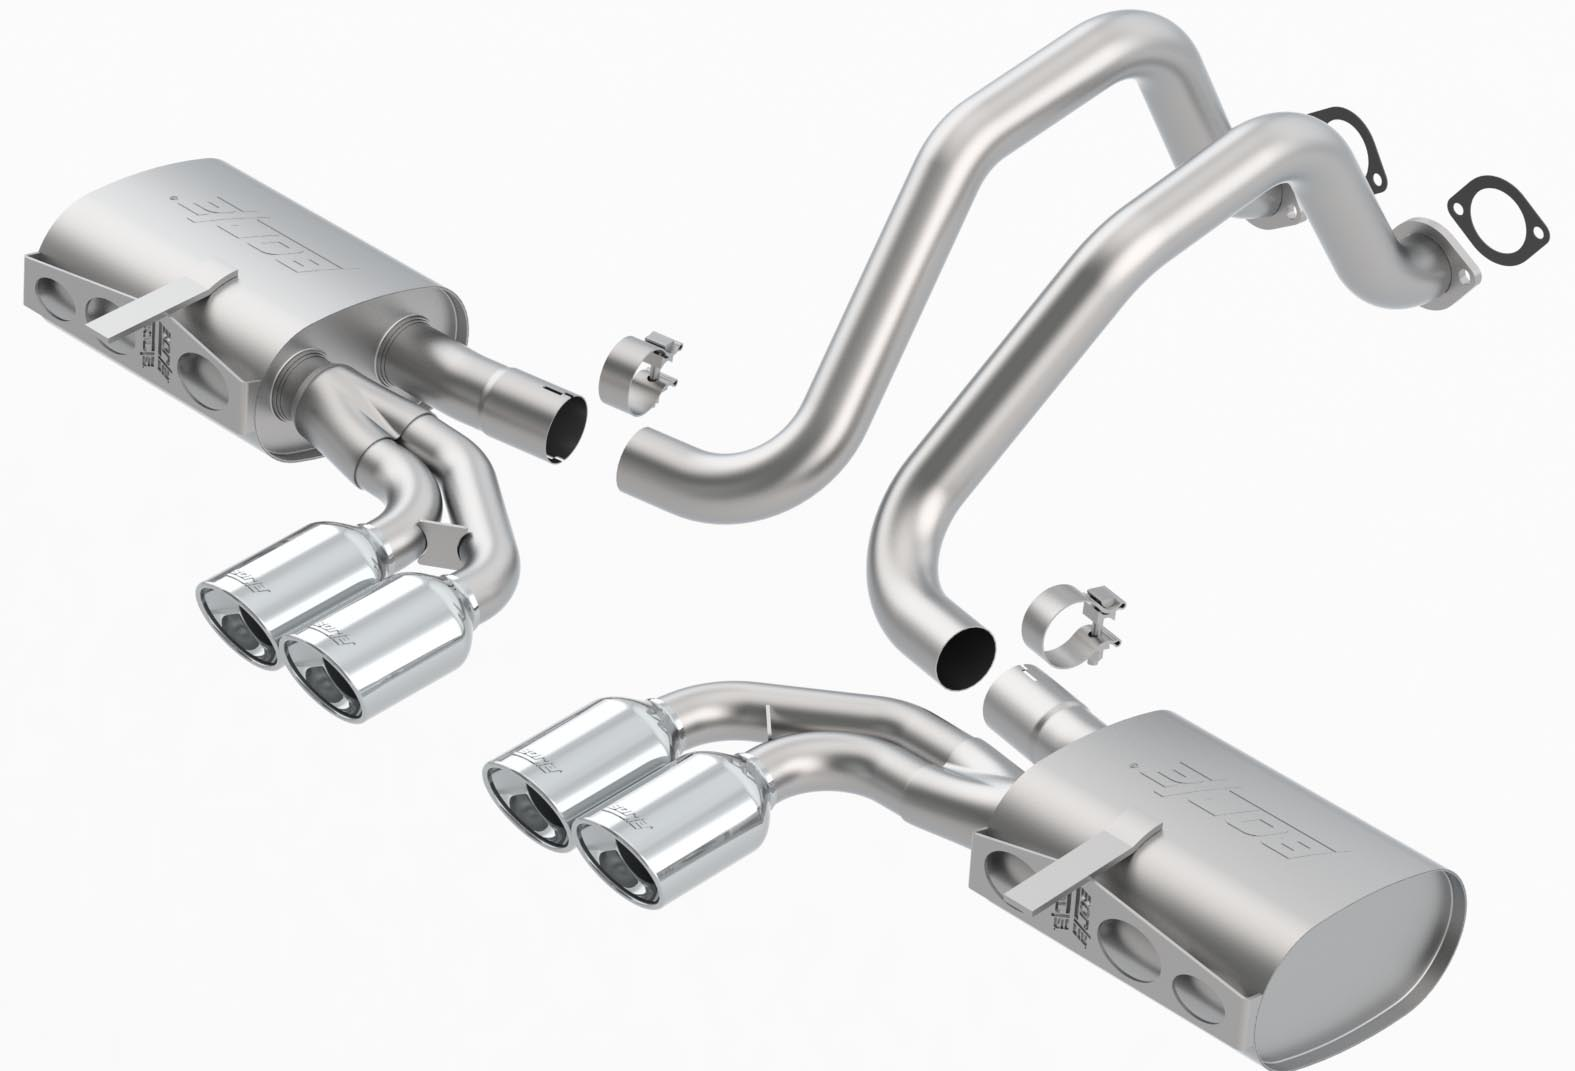 "Chevrolet Corvette C5/Z06 5.7l V8 1997-2004 Borla 2.5"", 2"" Cat-Back Exhaust System ""s-Type Ii"" - Dual Oval Rolled Angle-Cut"